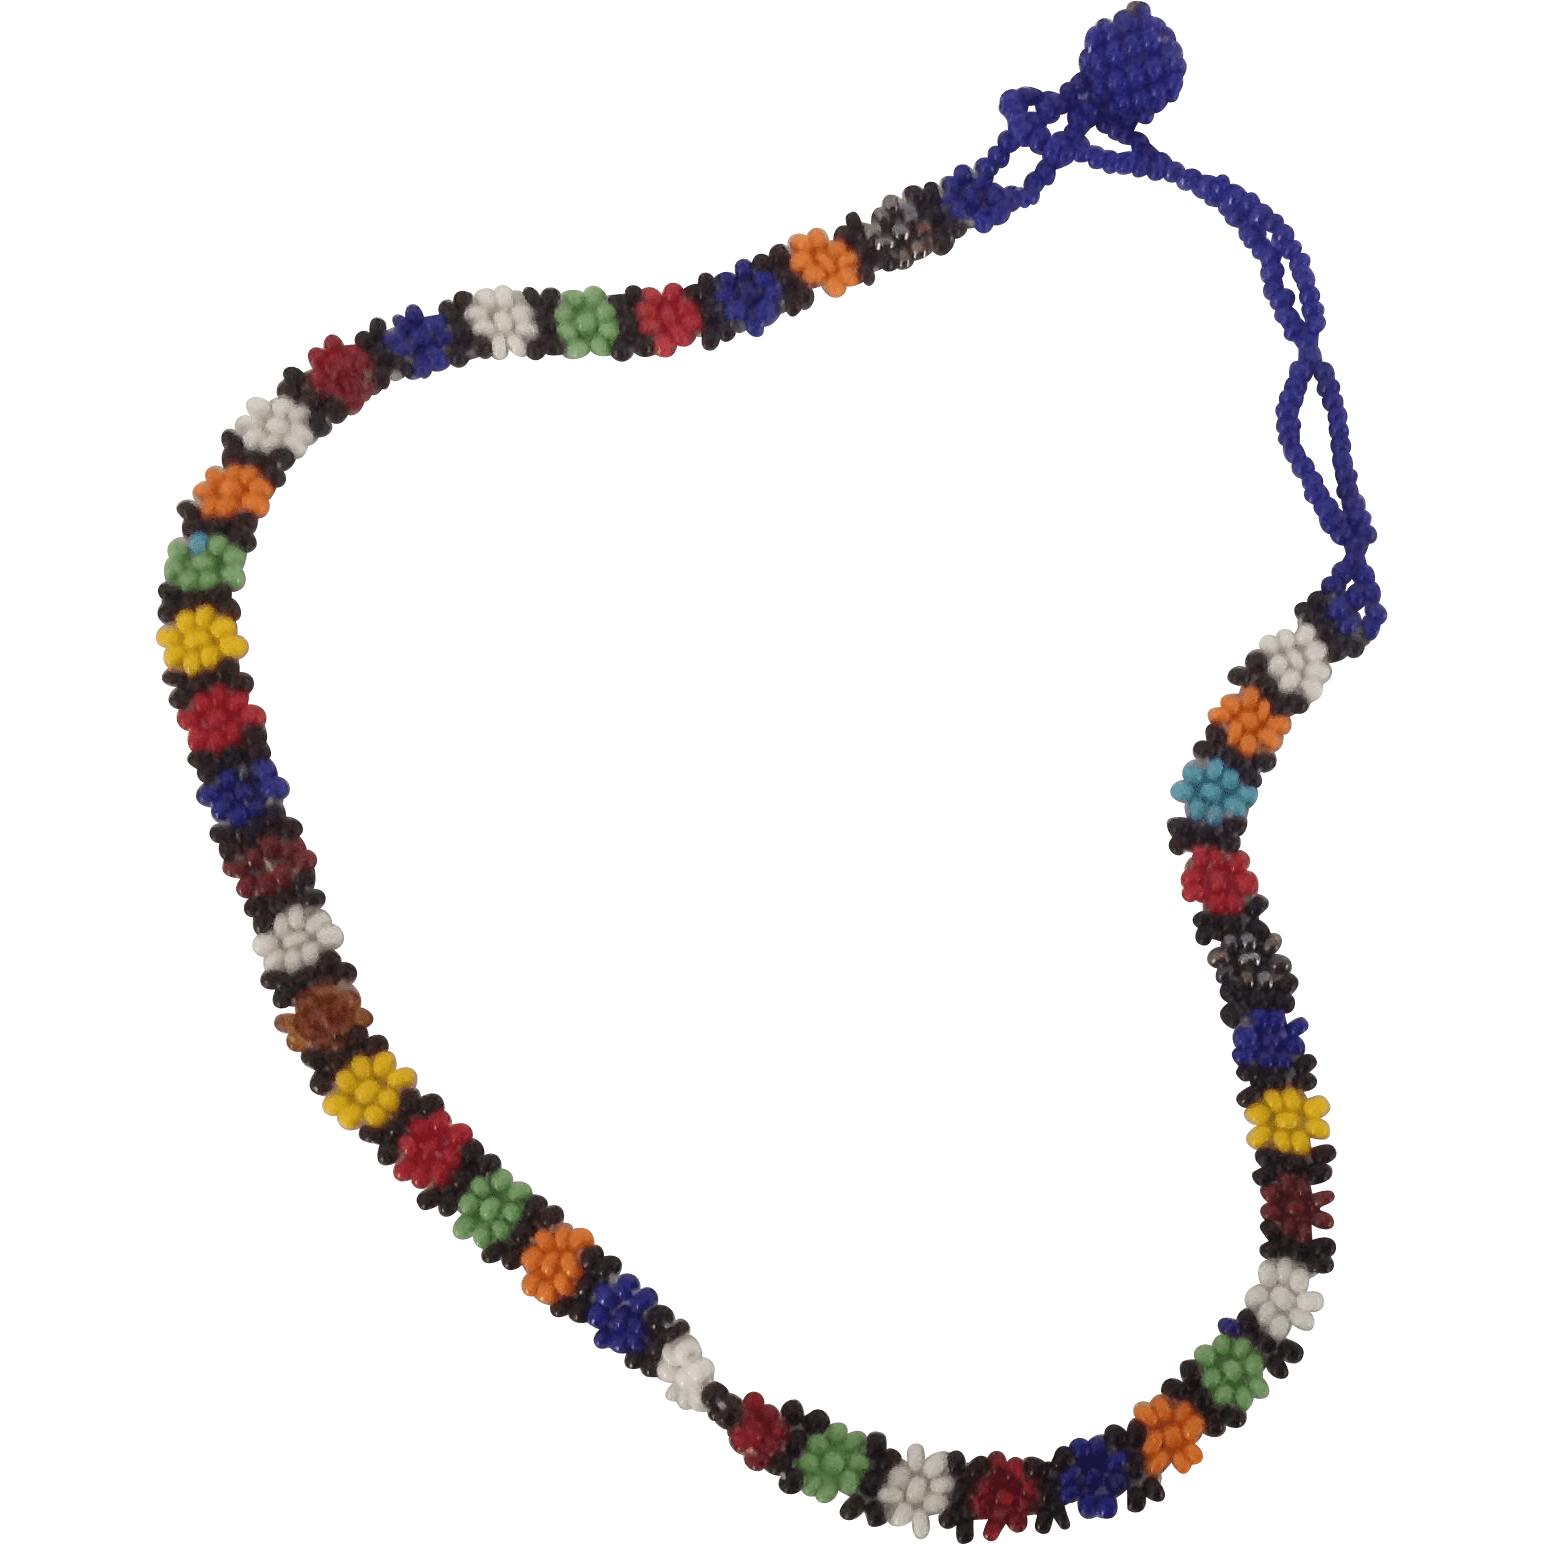 Vintage multicolored seed bead choker or childs necklace from carolynstt on Ruby Lane